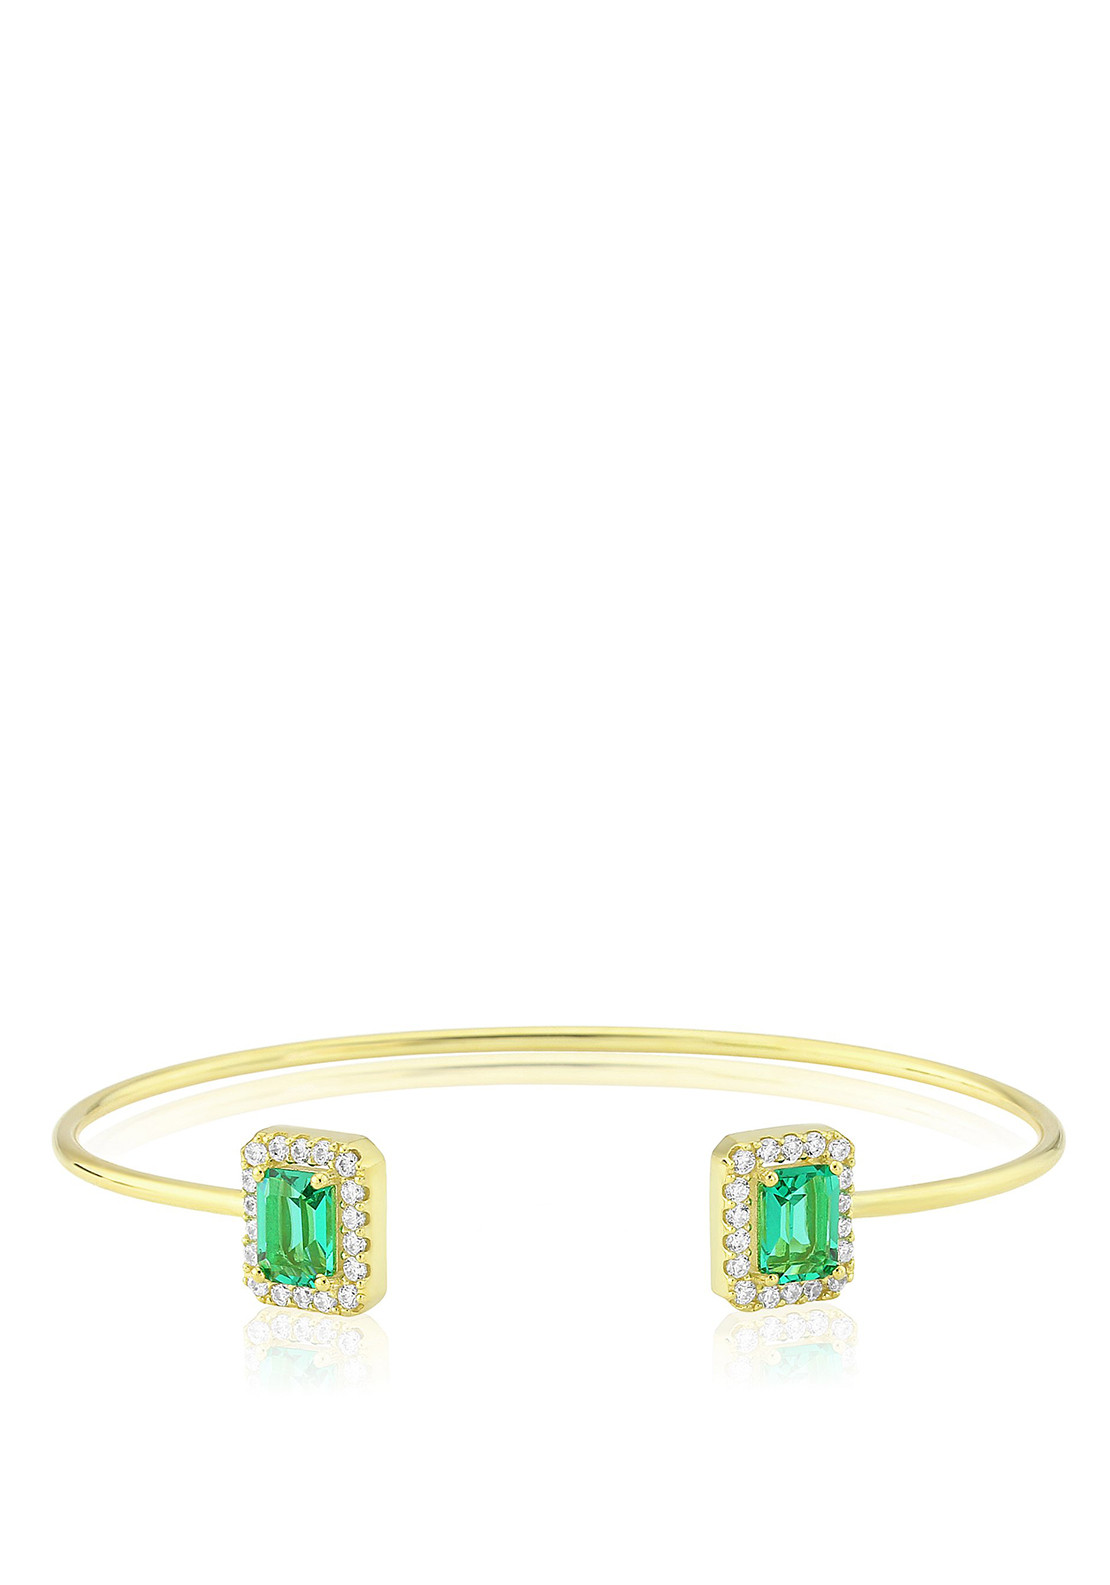 Waterford Crystal Square Faux Emerald and Pave Bangle, Gold